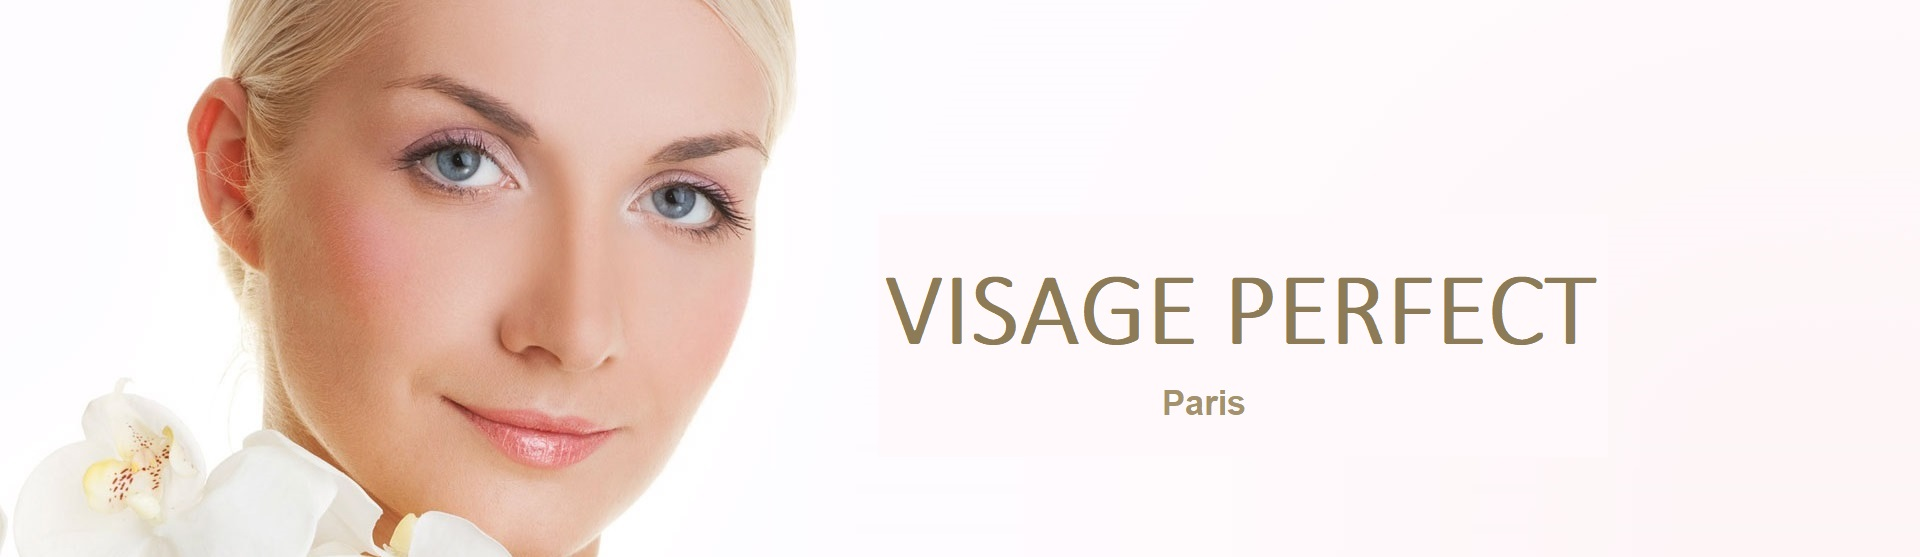 Perfect Skin Care - Anti-aging Massage  - Skin care beauty device - Visage Perfect - Paris